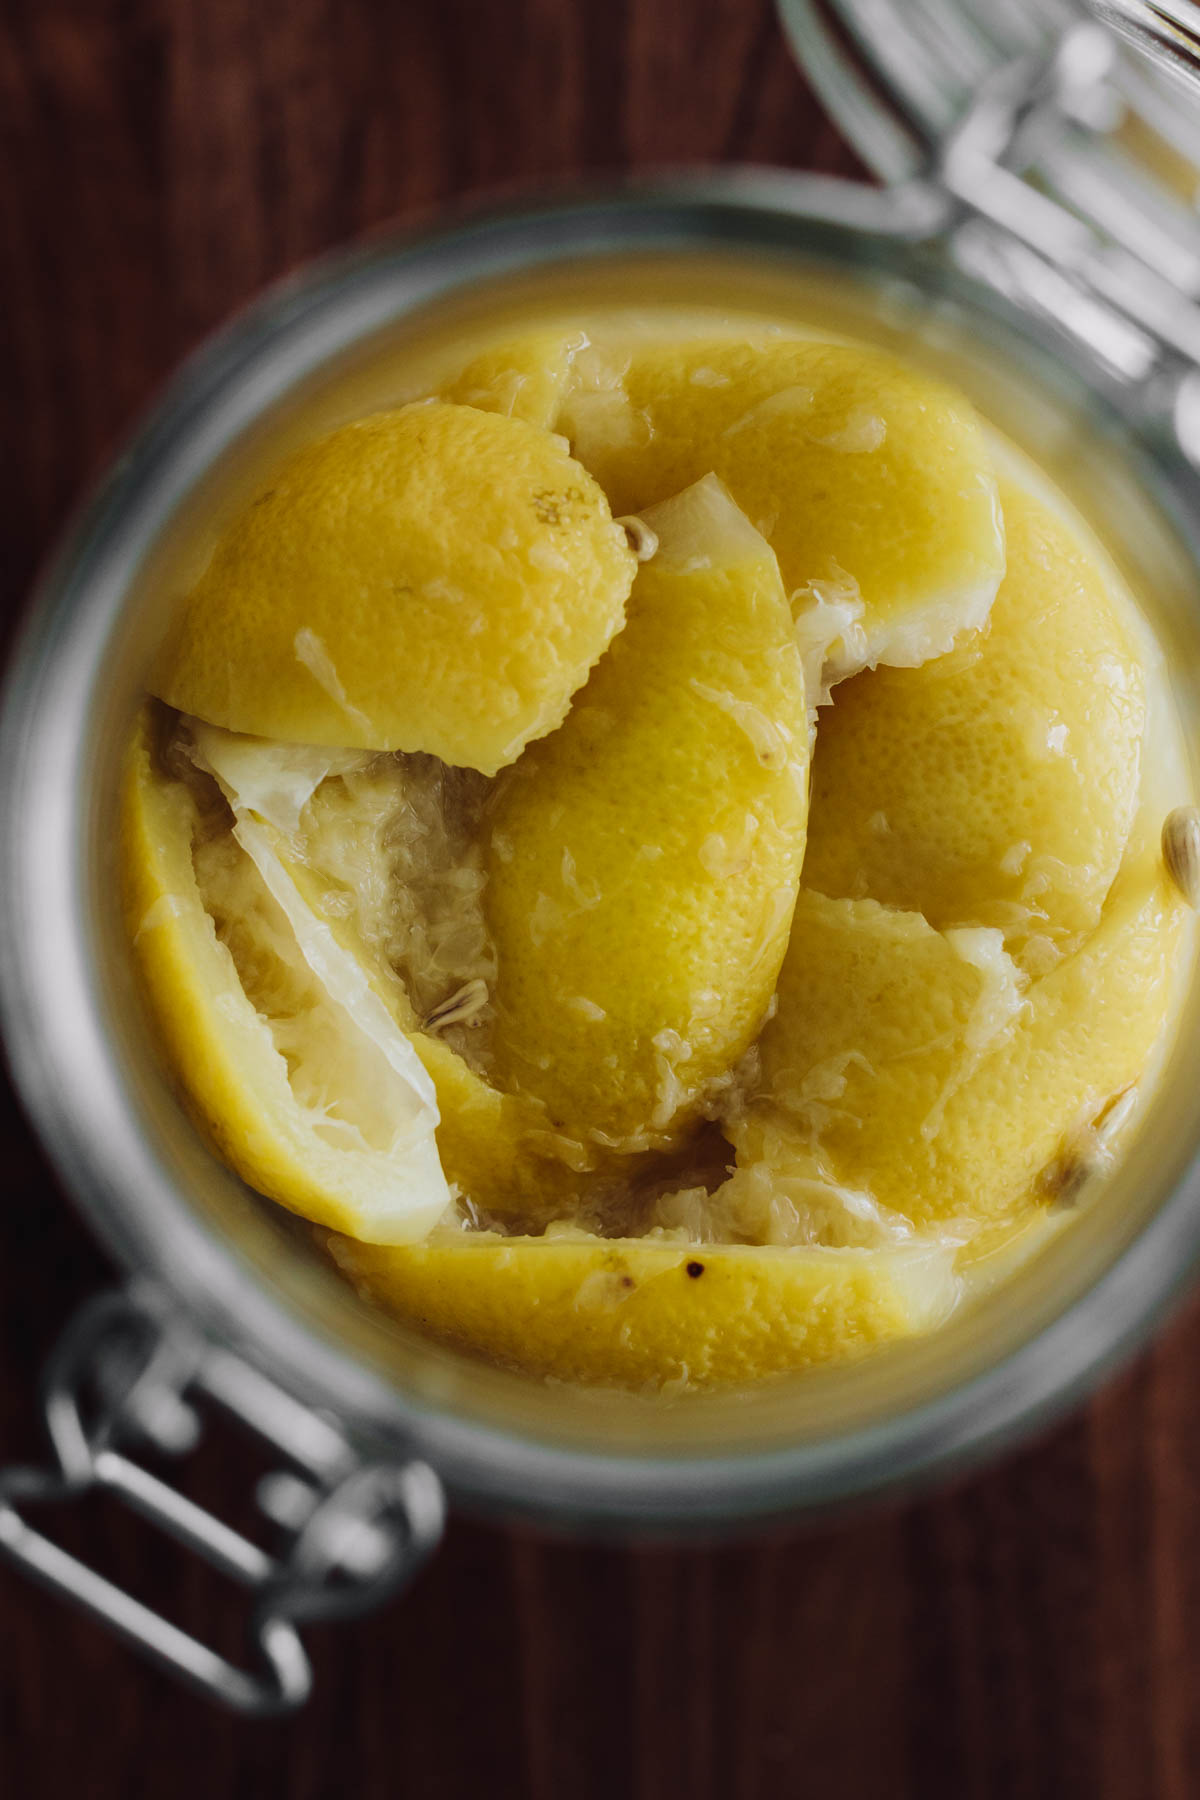 Close-up overhead photograph of lemons preserved in lemon juice and salt.